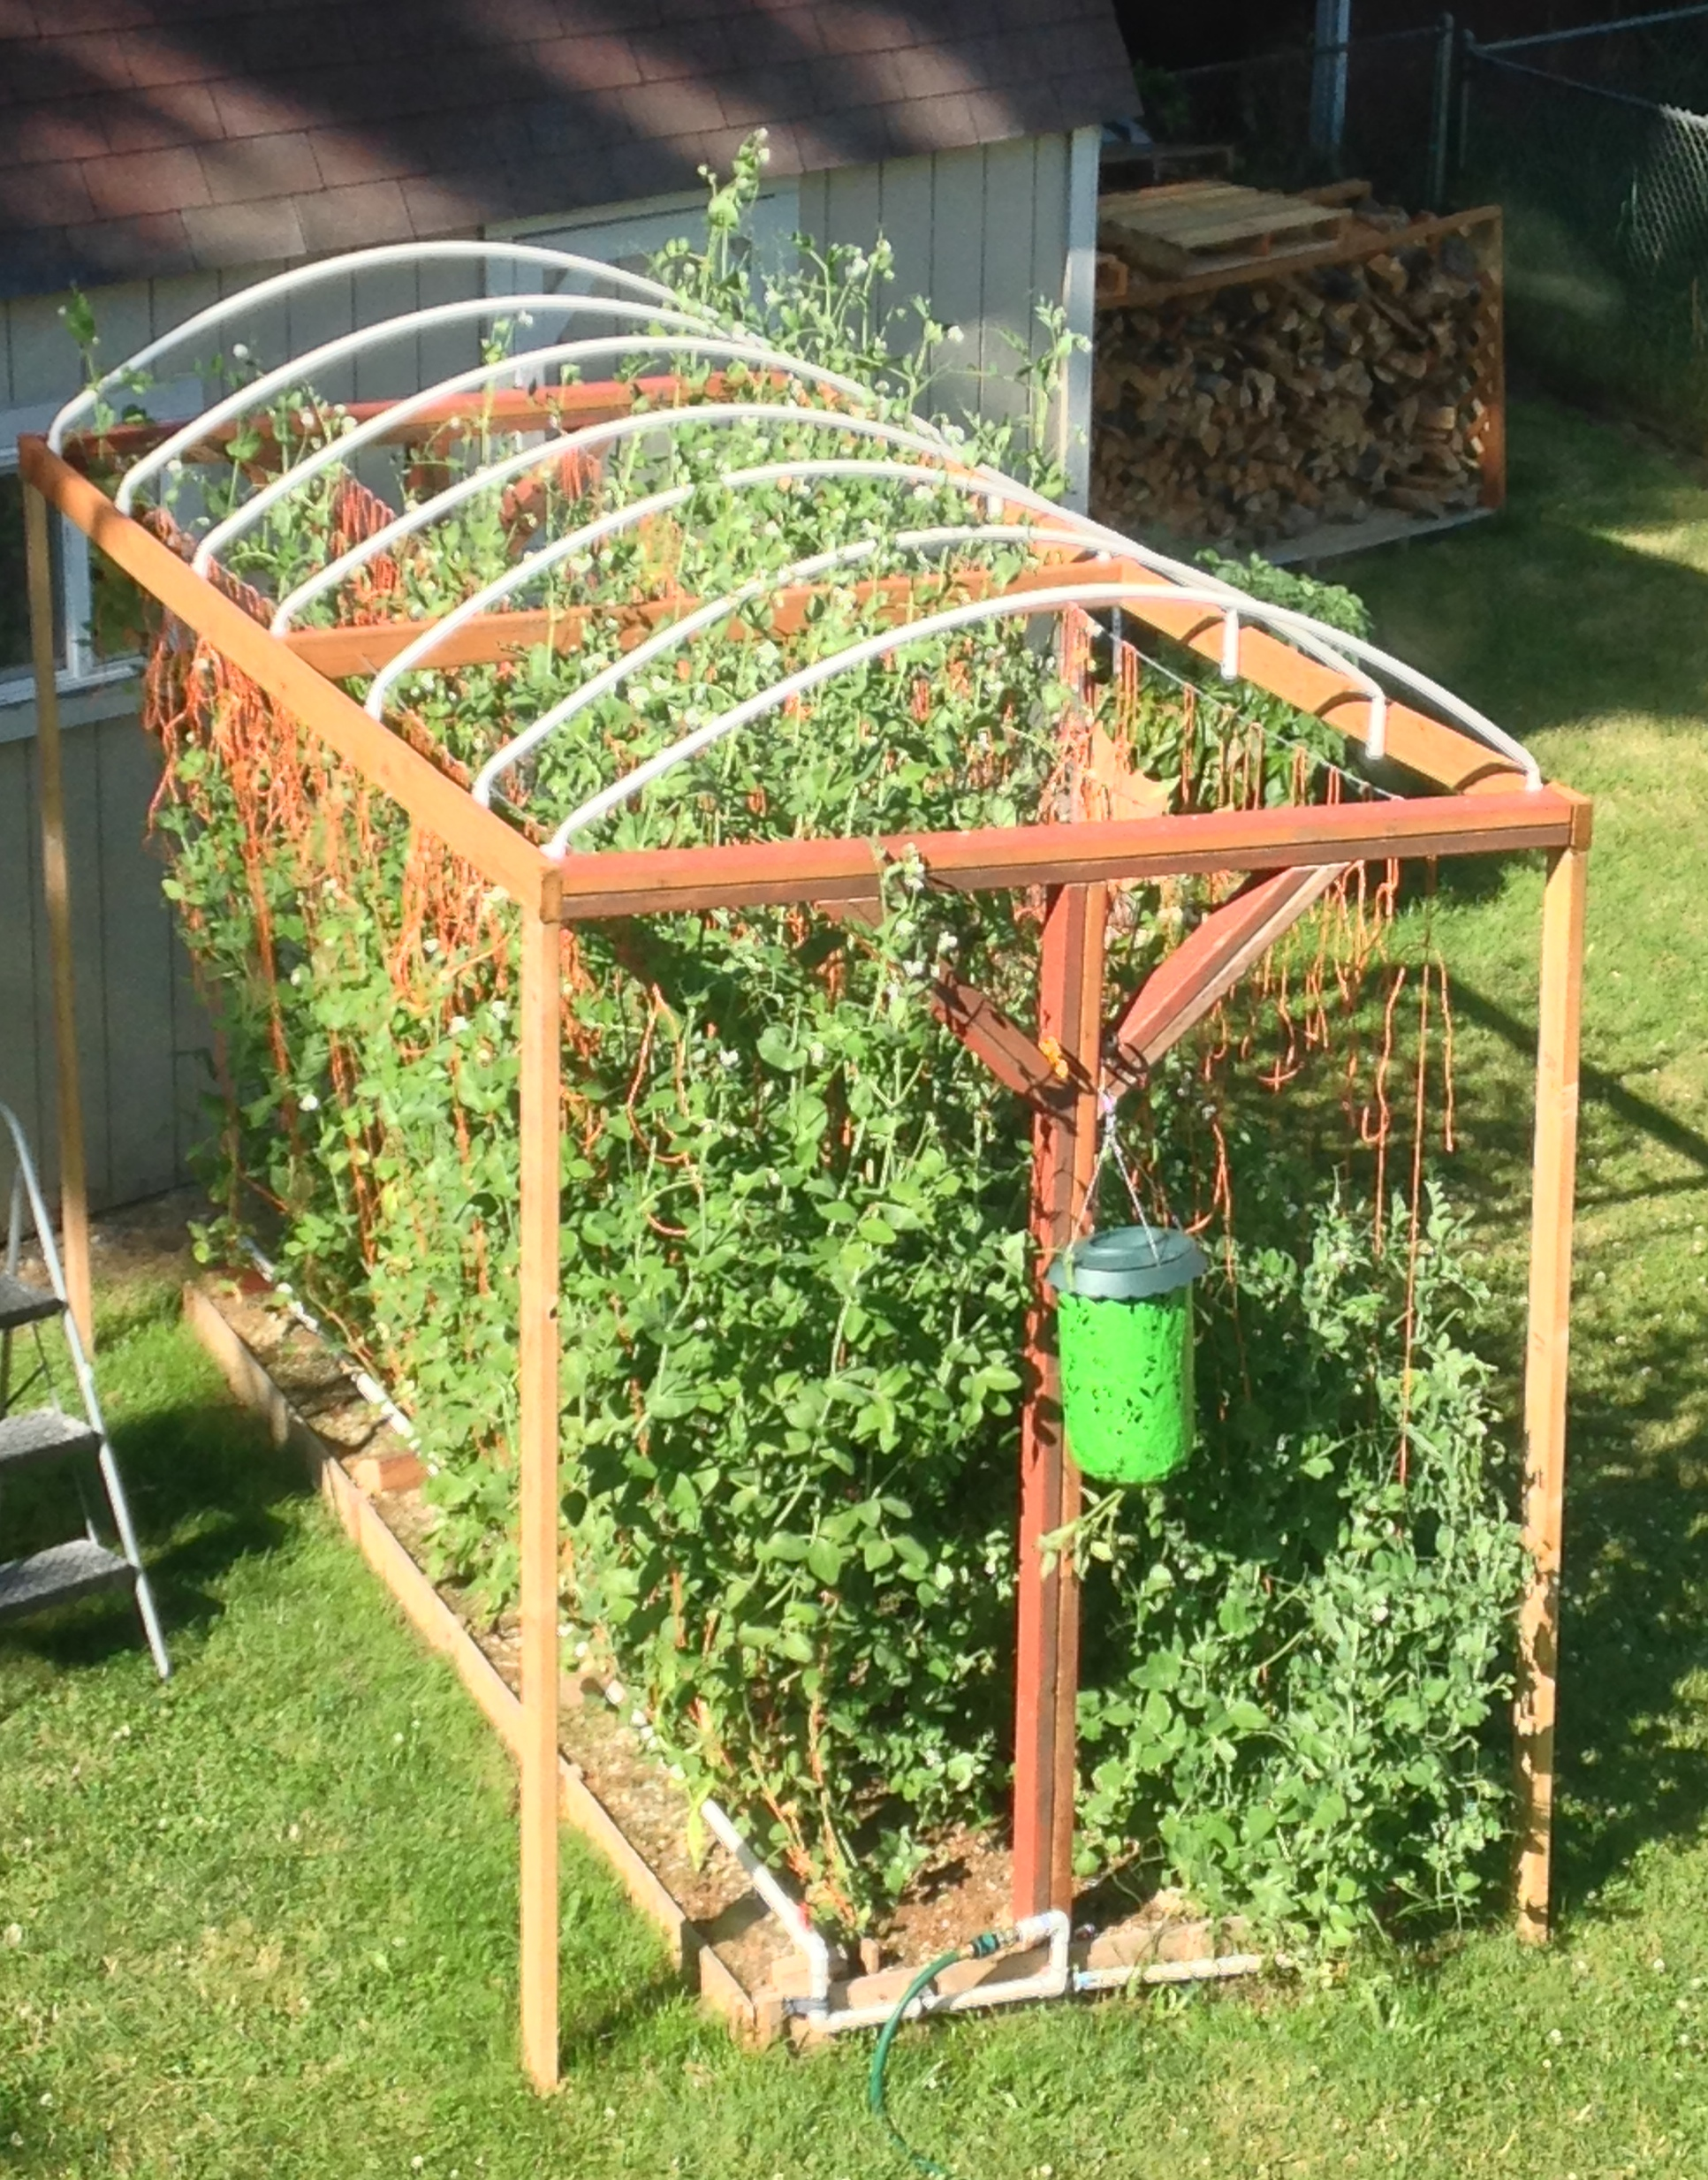 We decided that our next trellis system will be more simple to make and wouldnu0027t need so many holes to be dug. I saw someone posting on Facebook picture of ...  sc 1 st  Moms Simple Life & How to Build a trellis system for vertical growing | Moms Simple Life